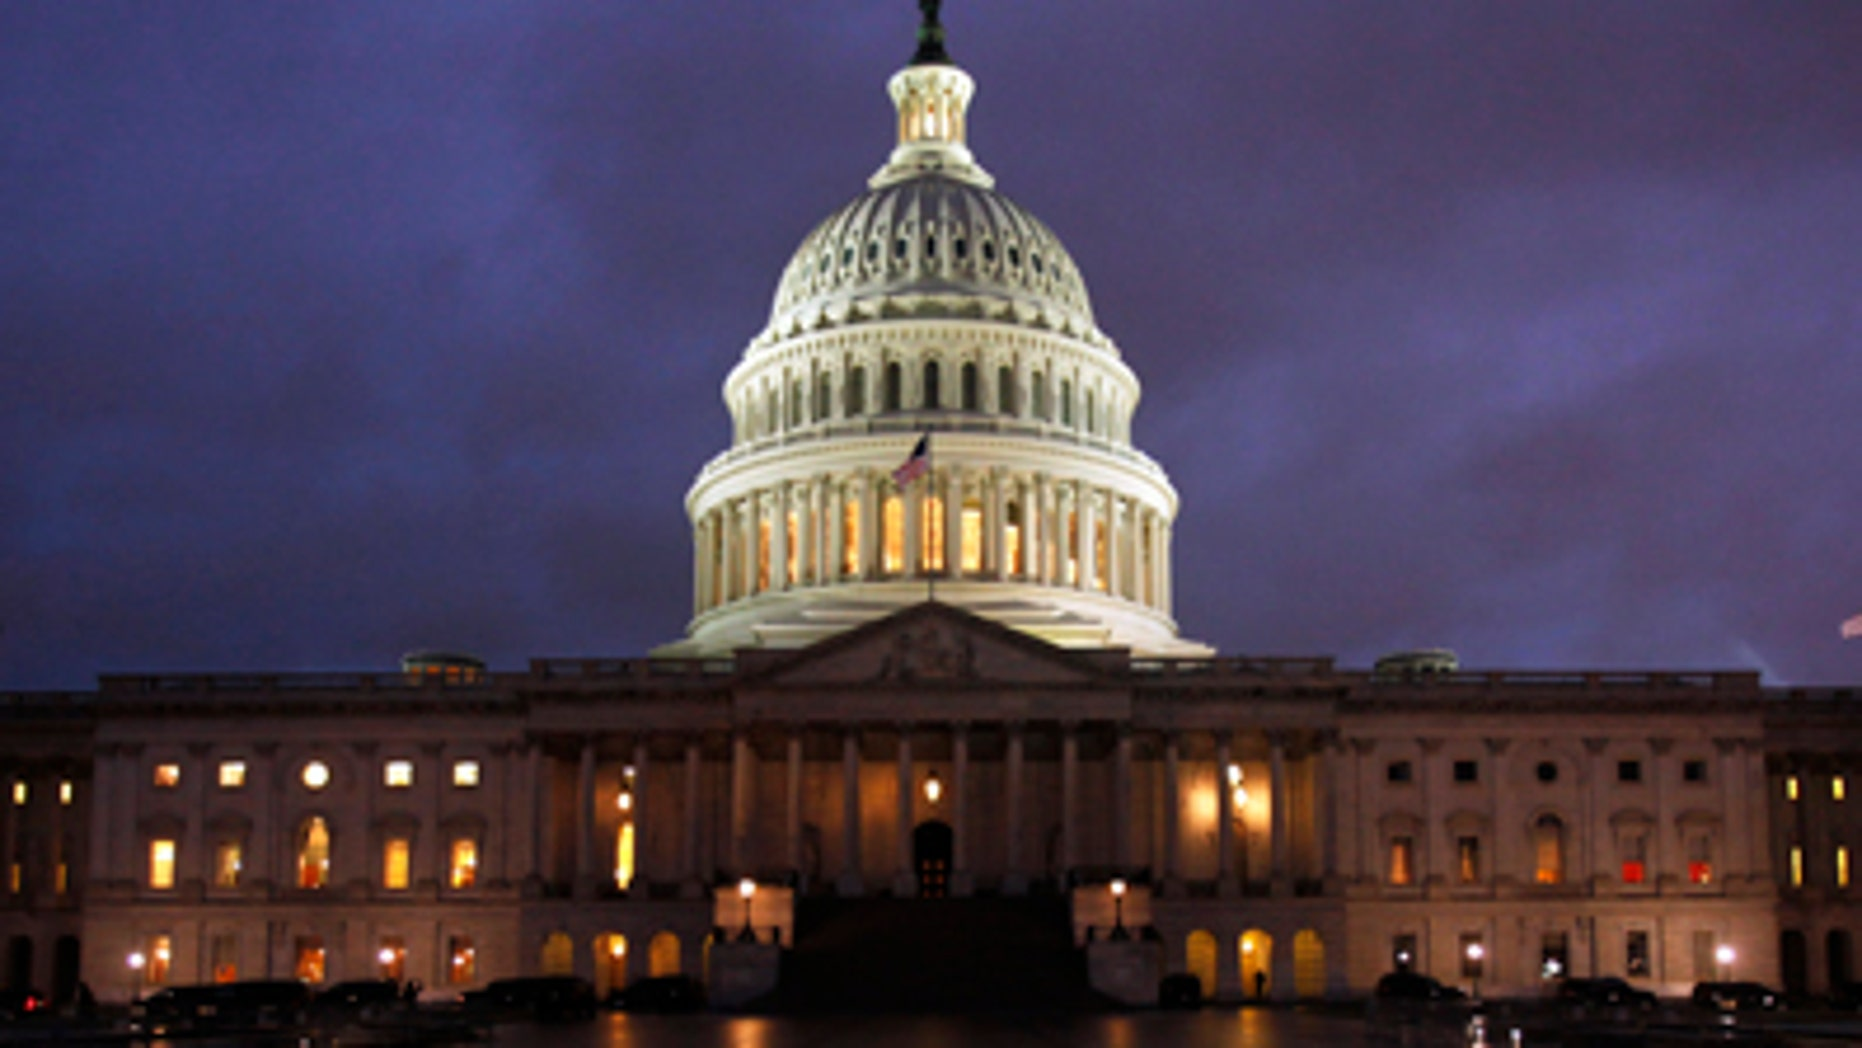 File: The Capitol Hill dome at night